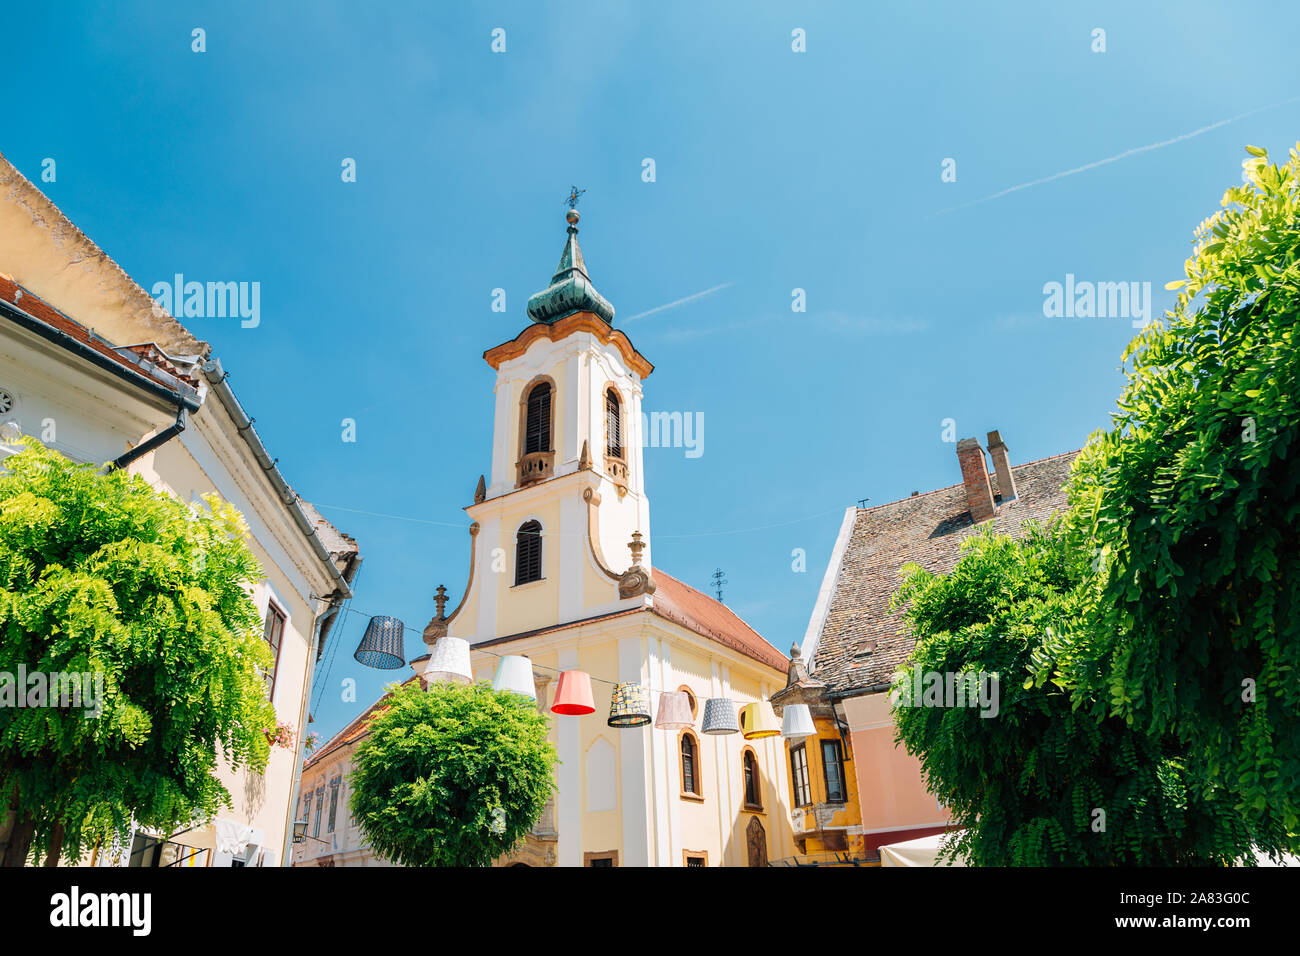 Blagovestenska church at Szentendre medieval old town main square in Hungary Stock Photo